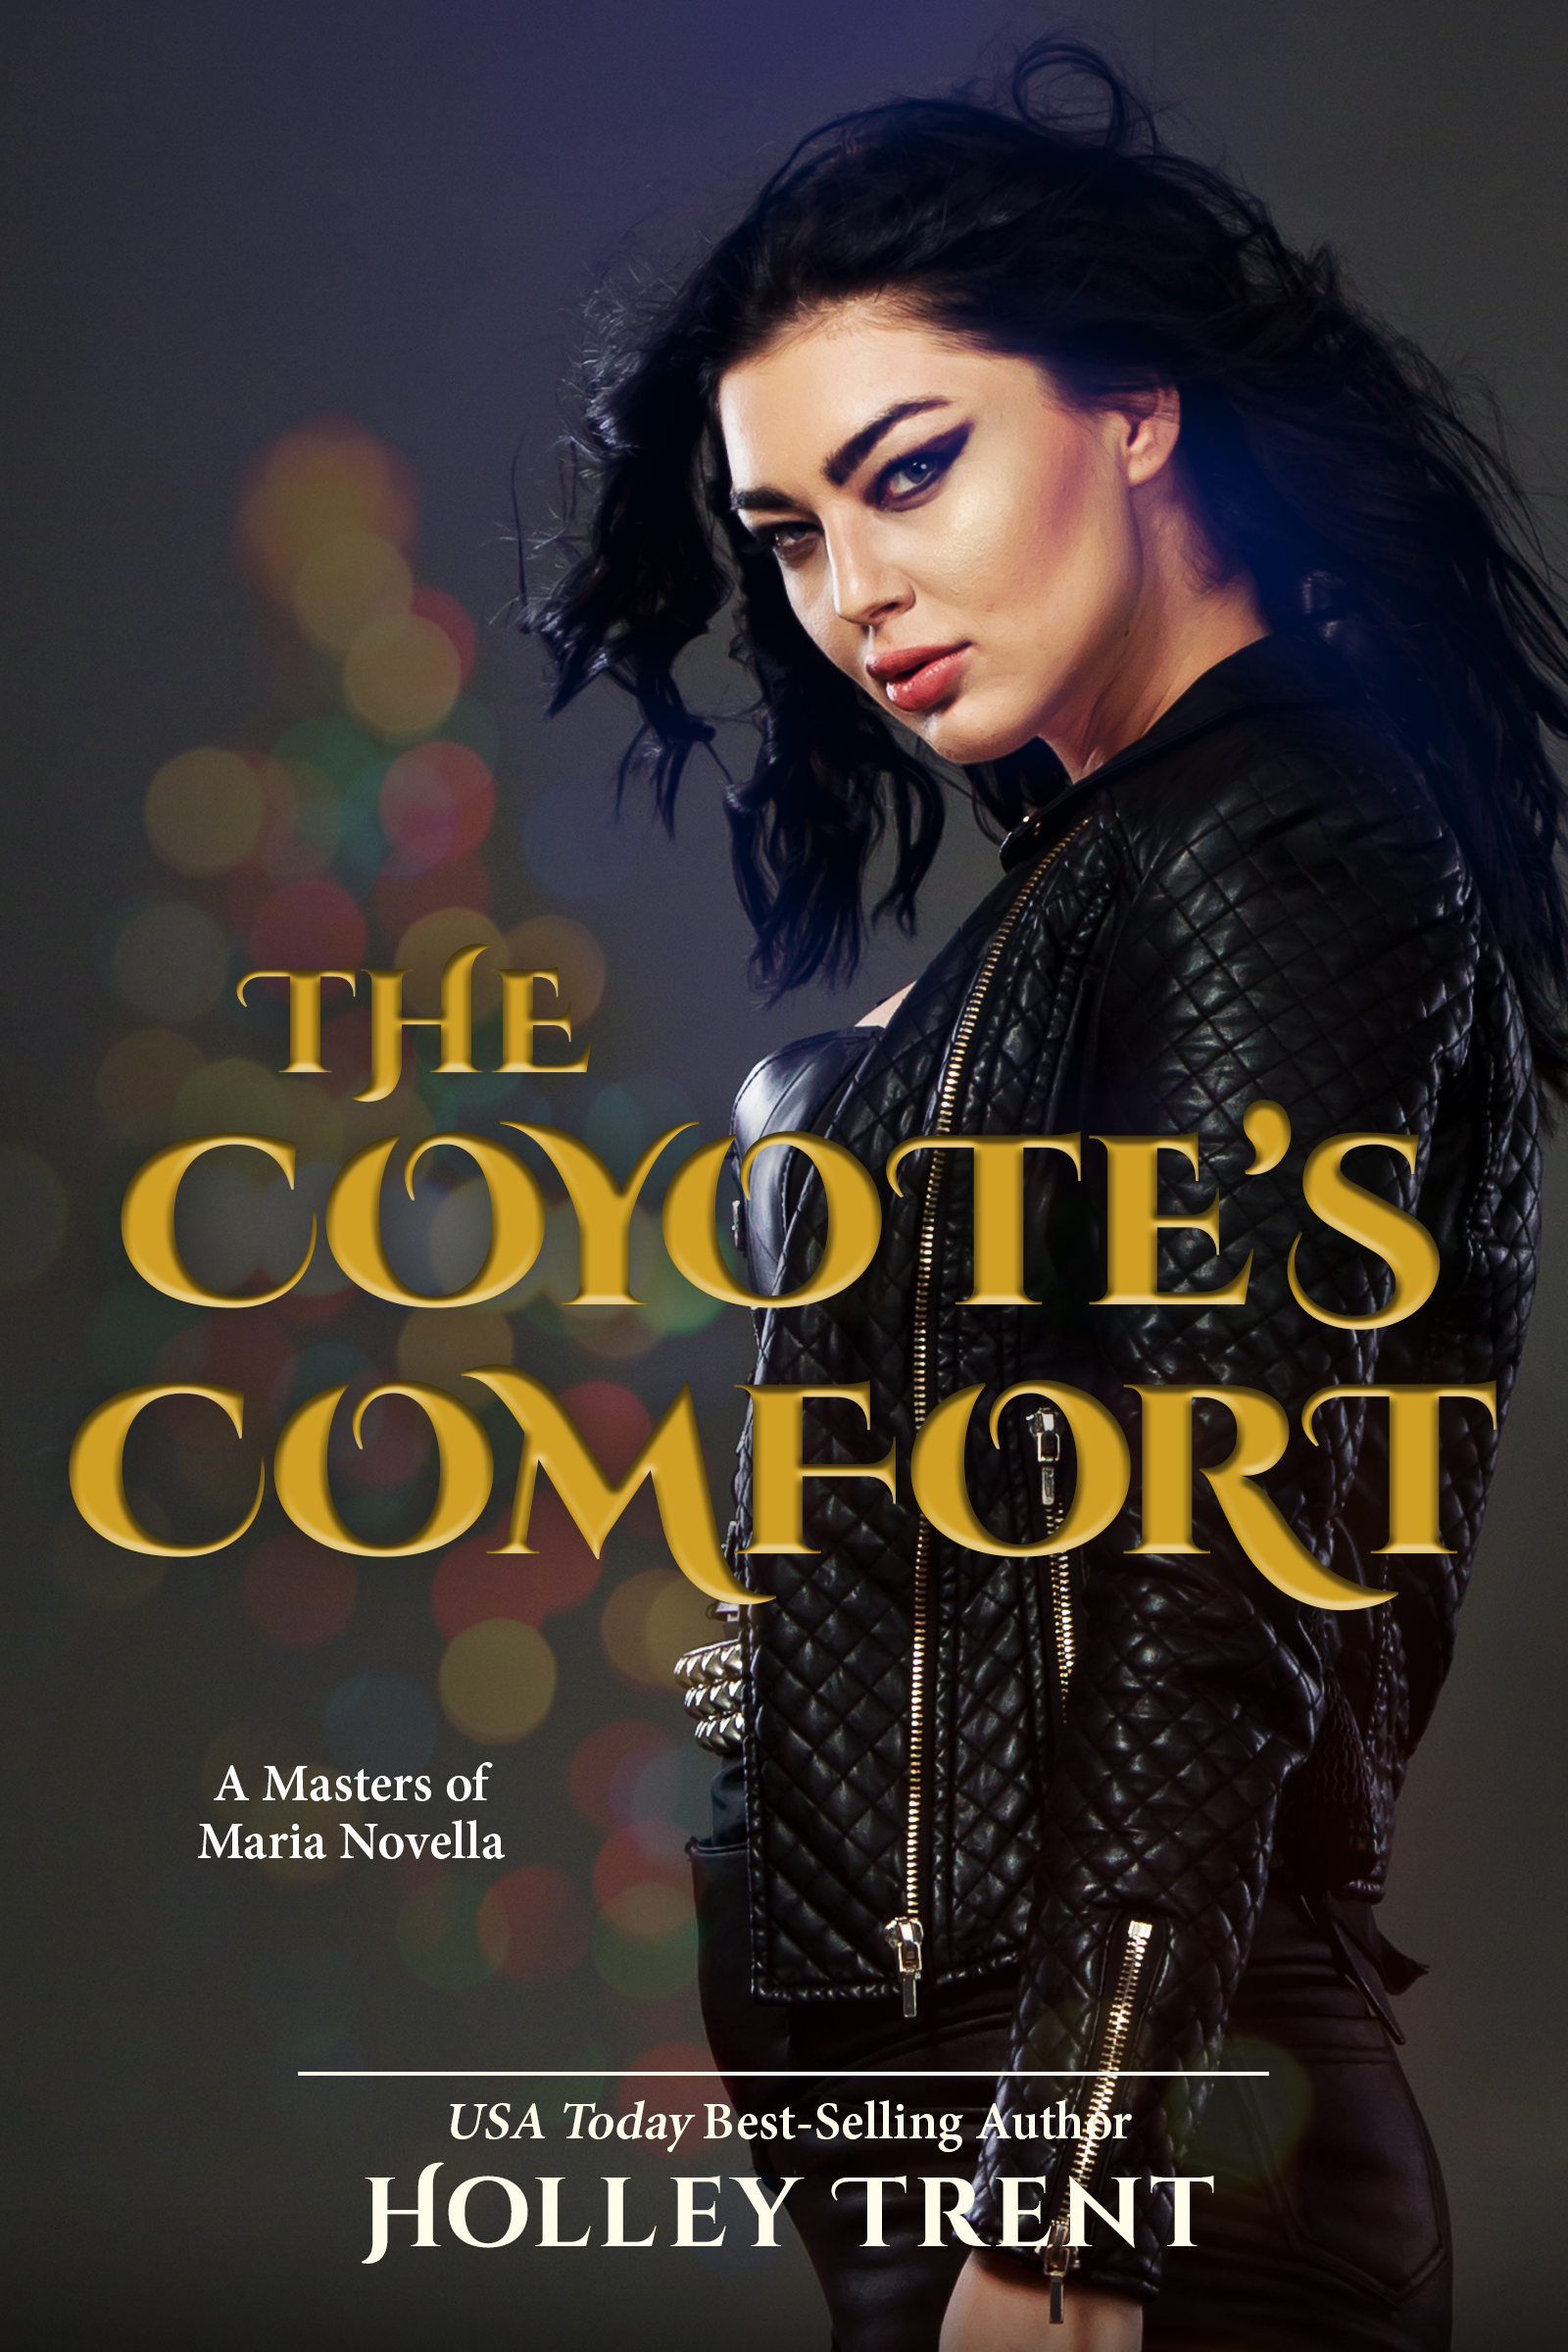 Cover art for The Coyote's Comfort by Holley Trent. Features a dark-haired woman dressed in leather with lit-up holiday tree in distant background.